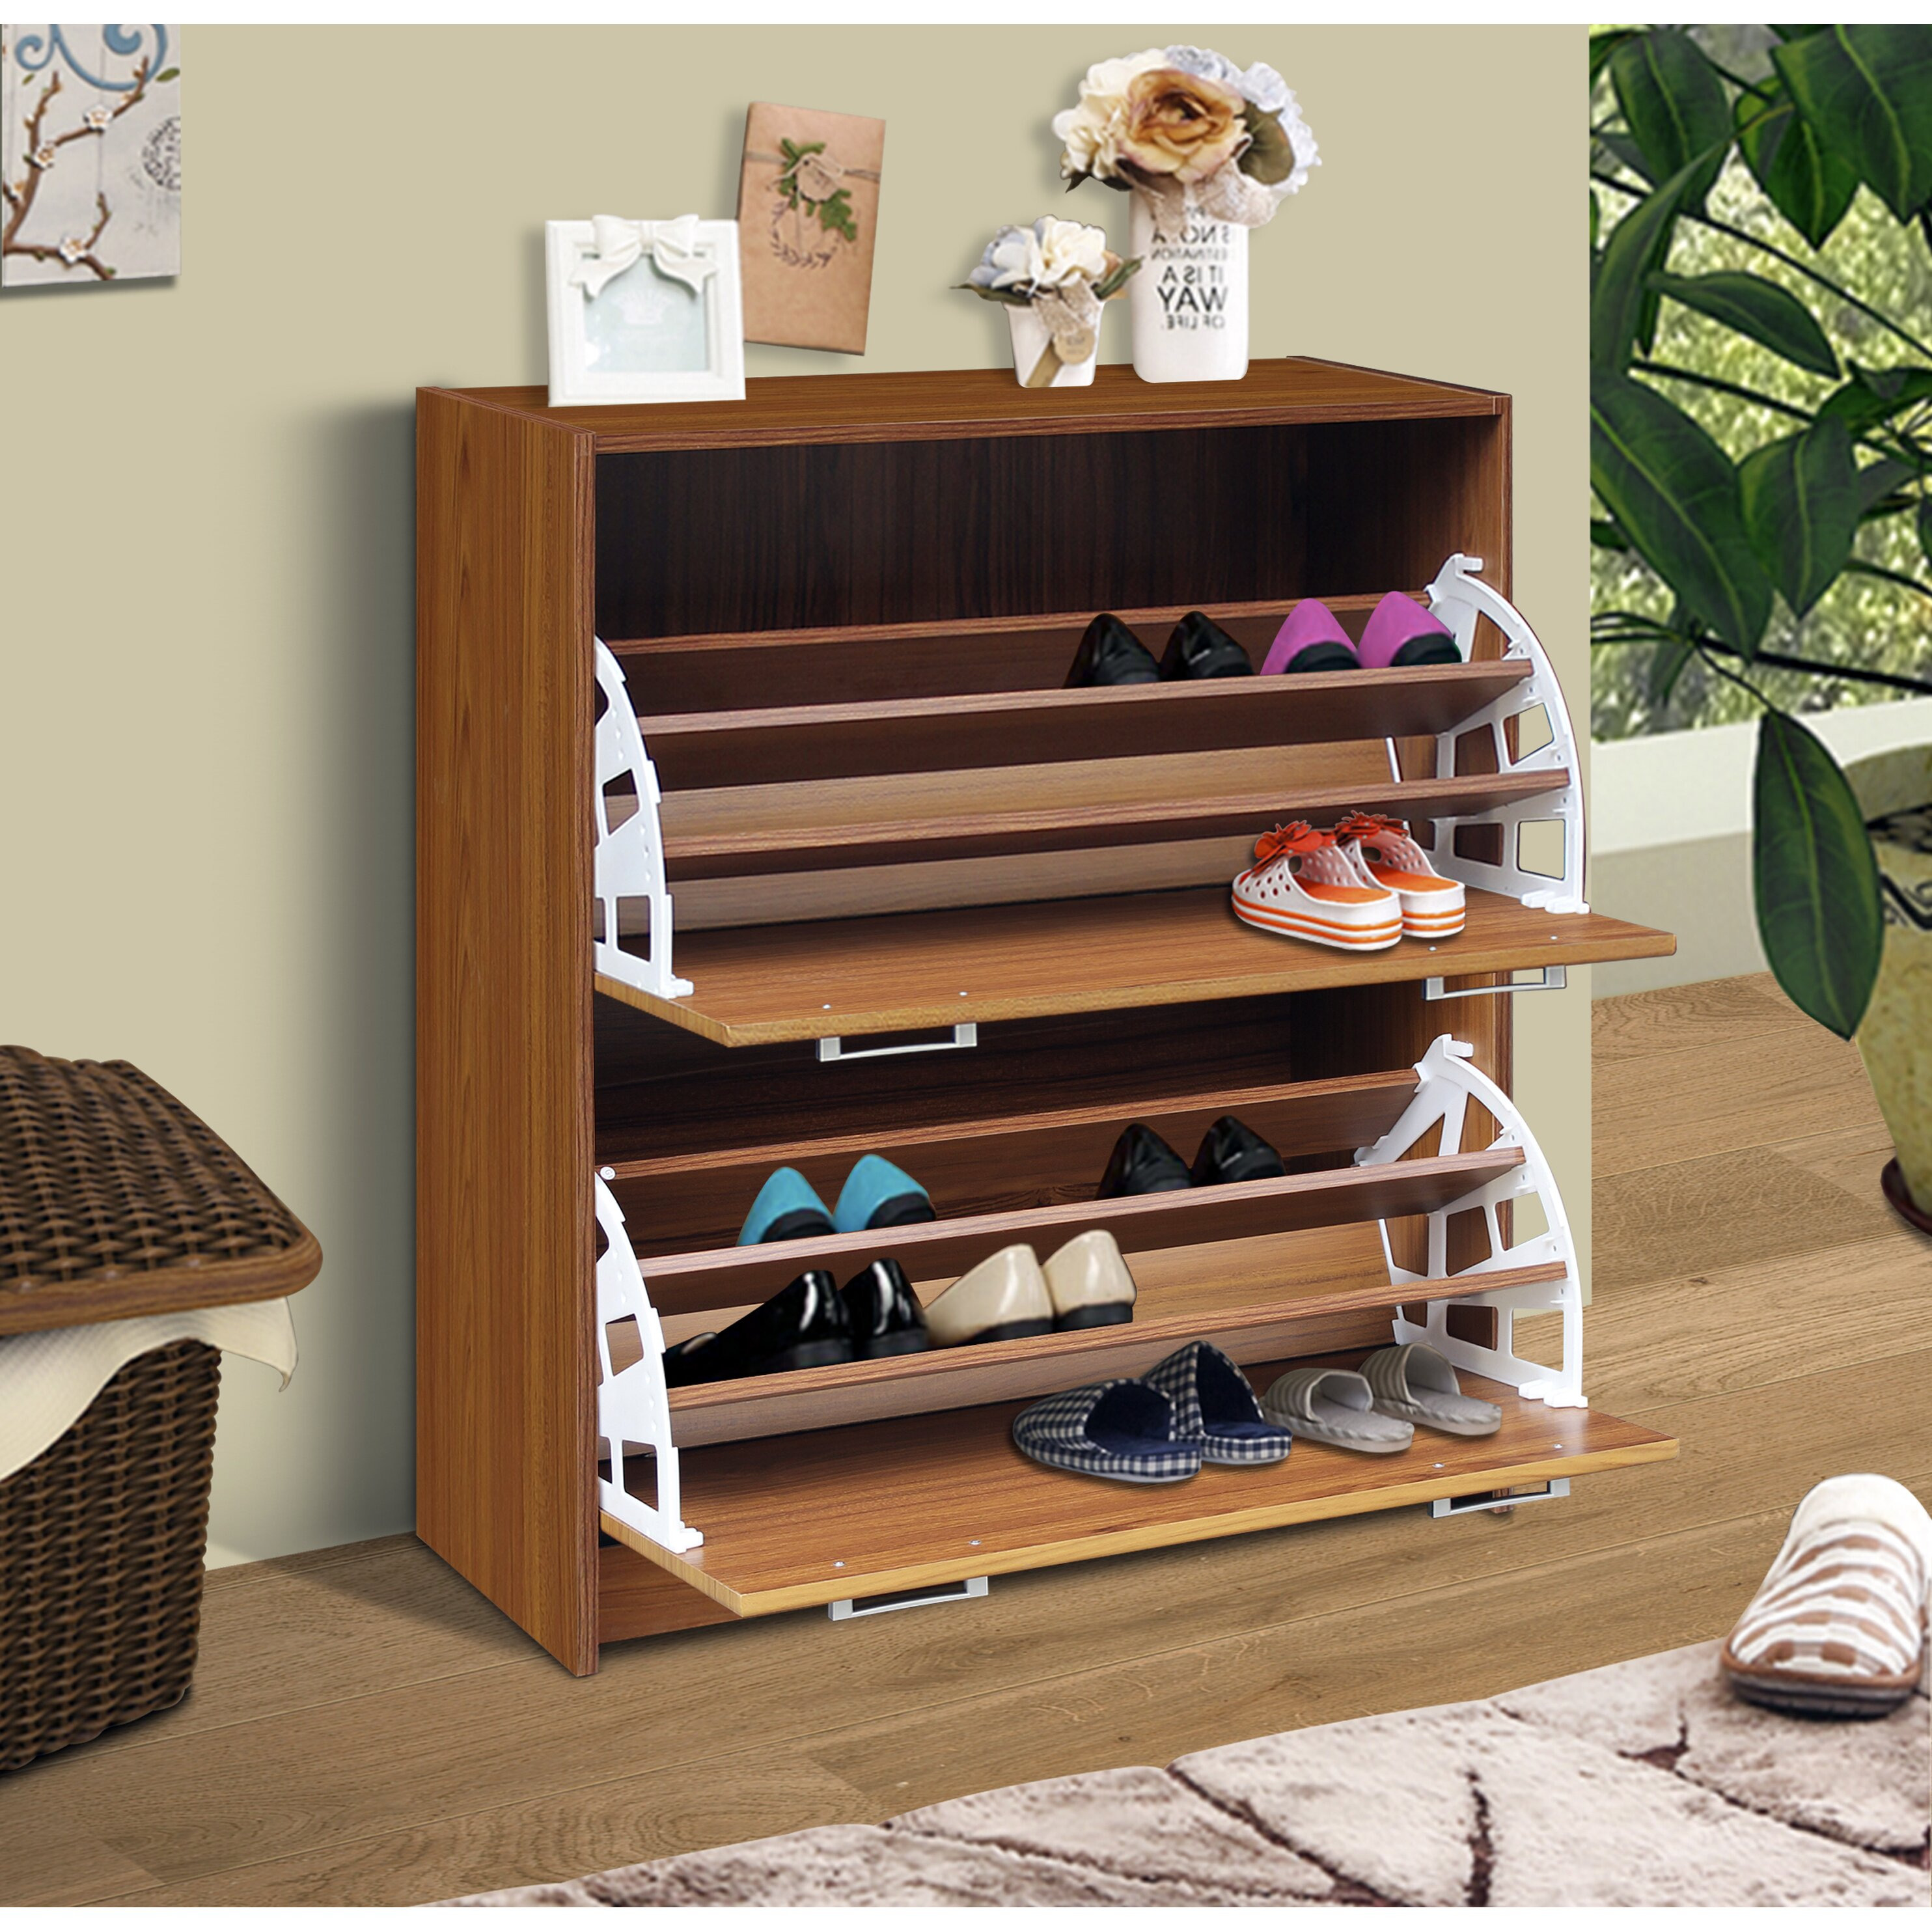 Buy Shoes Cabinet Singapore